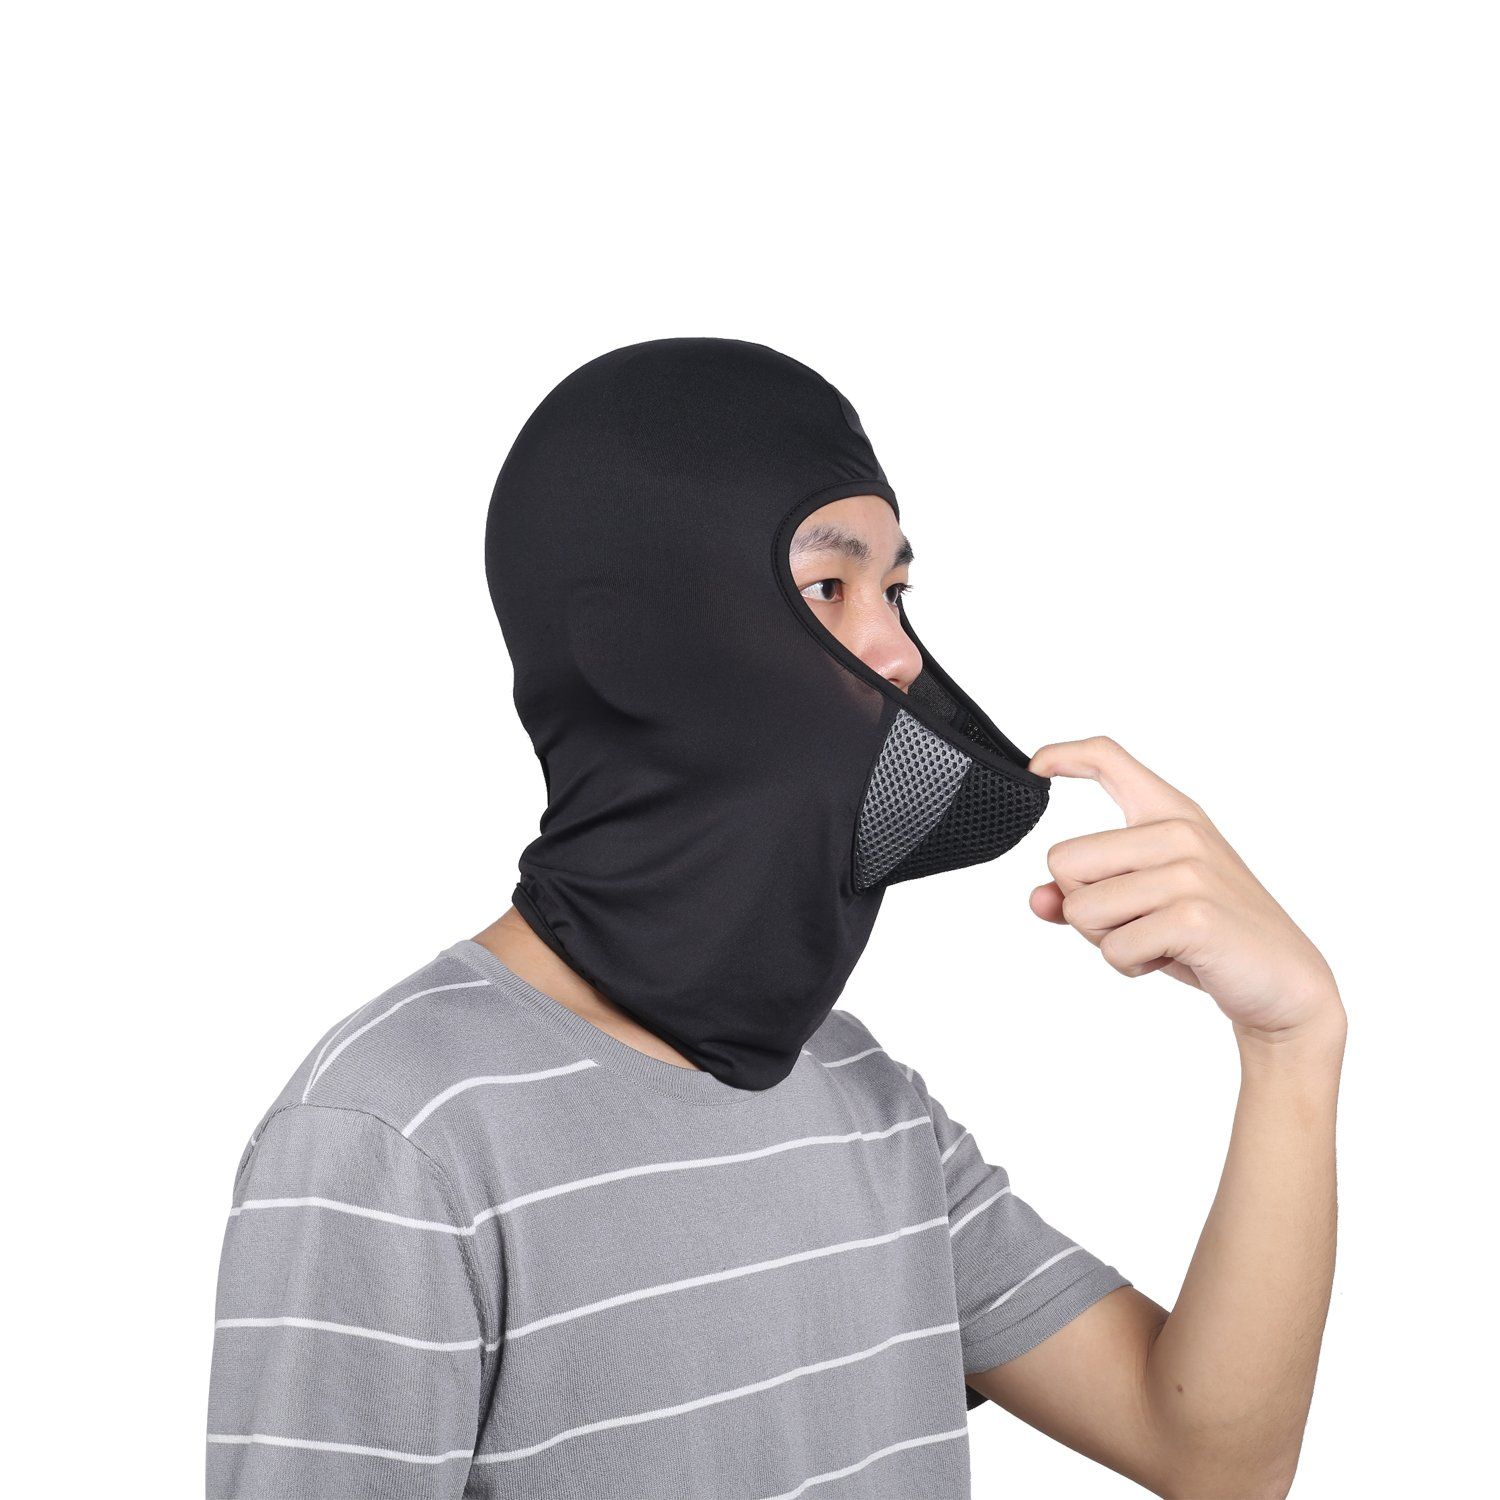 Balaclava Hiking Dust /& breathable Outdoor Multifunctional Summer Windproof Full Face Mask for Cycling Motorcycle